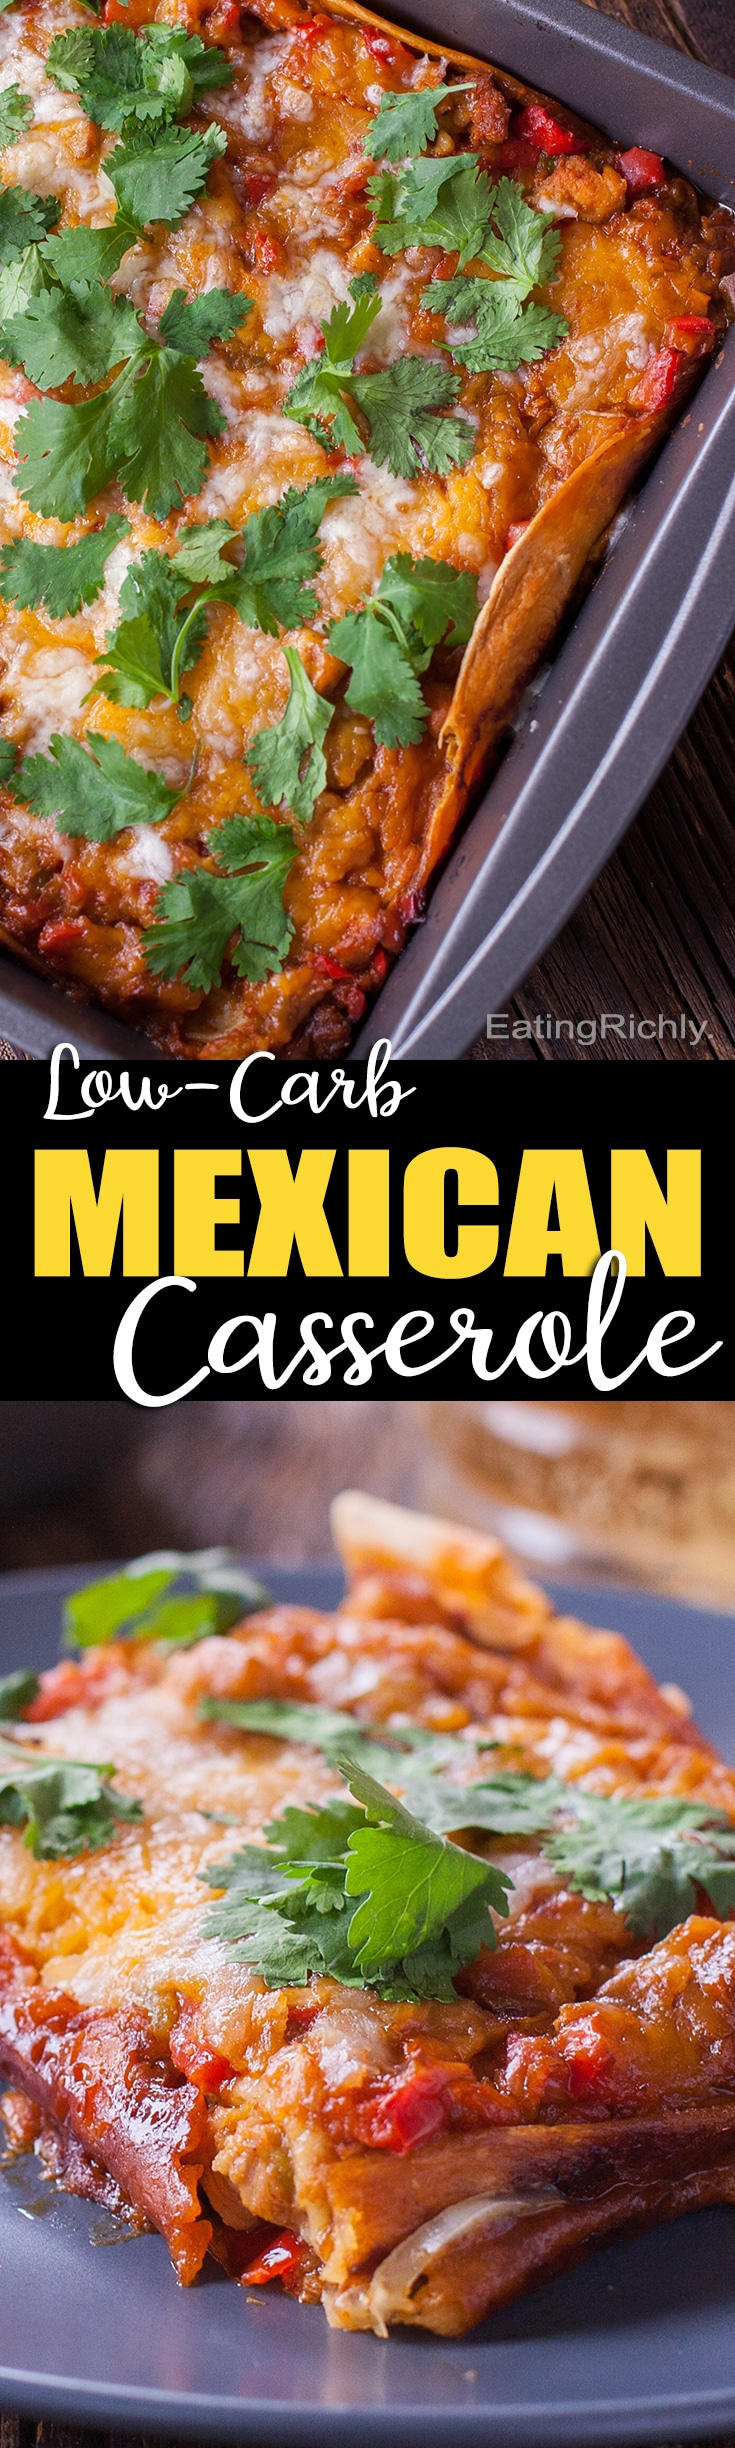 Mexican Casserole WW Recipe